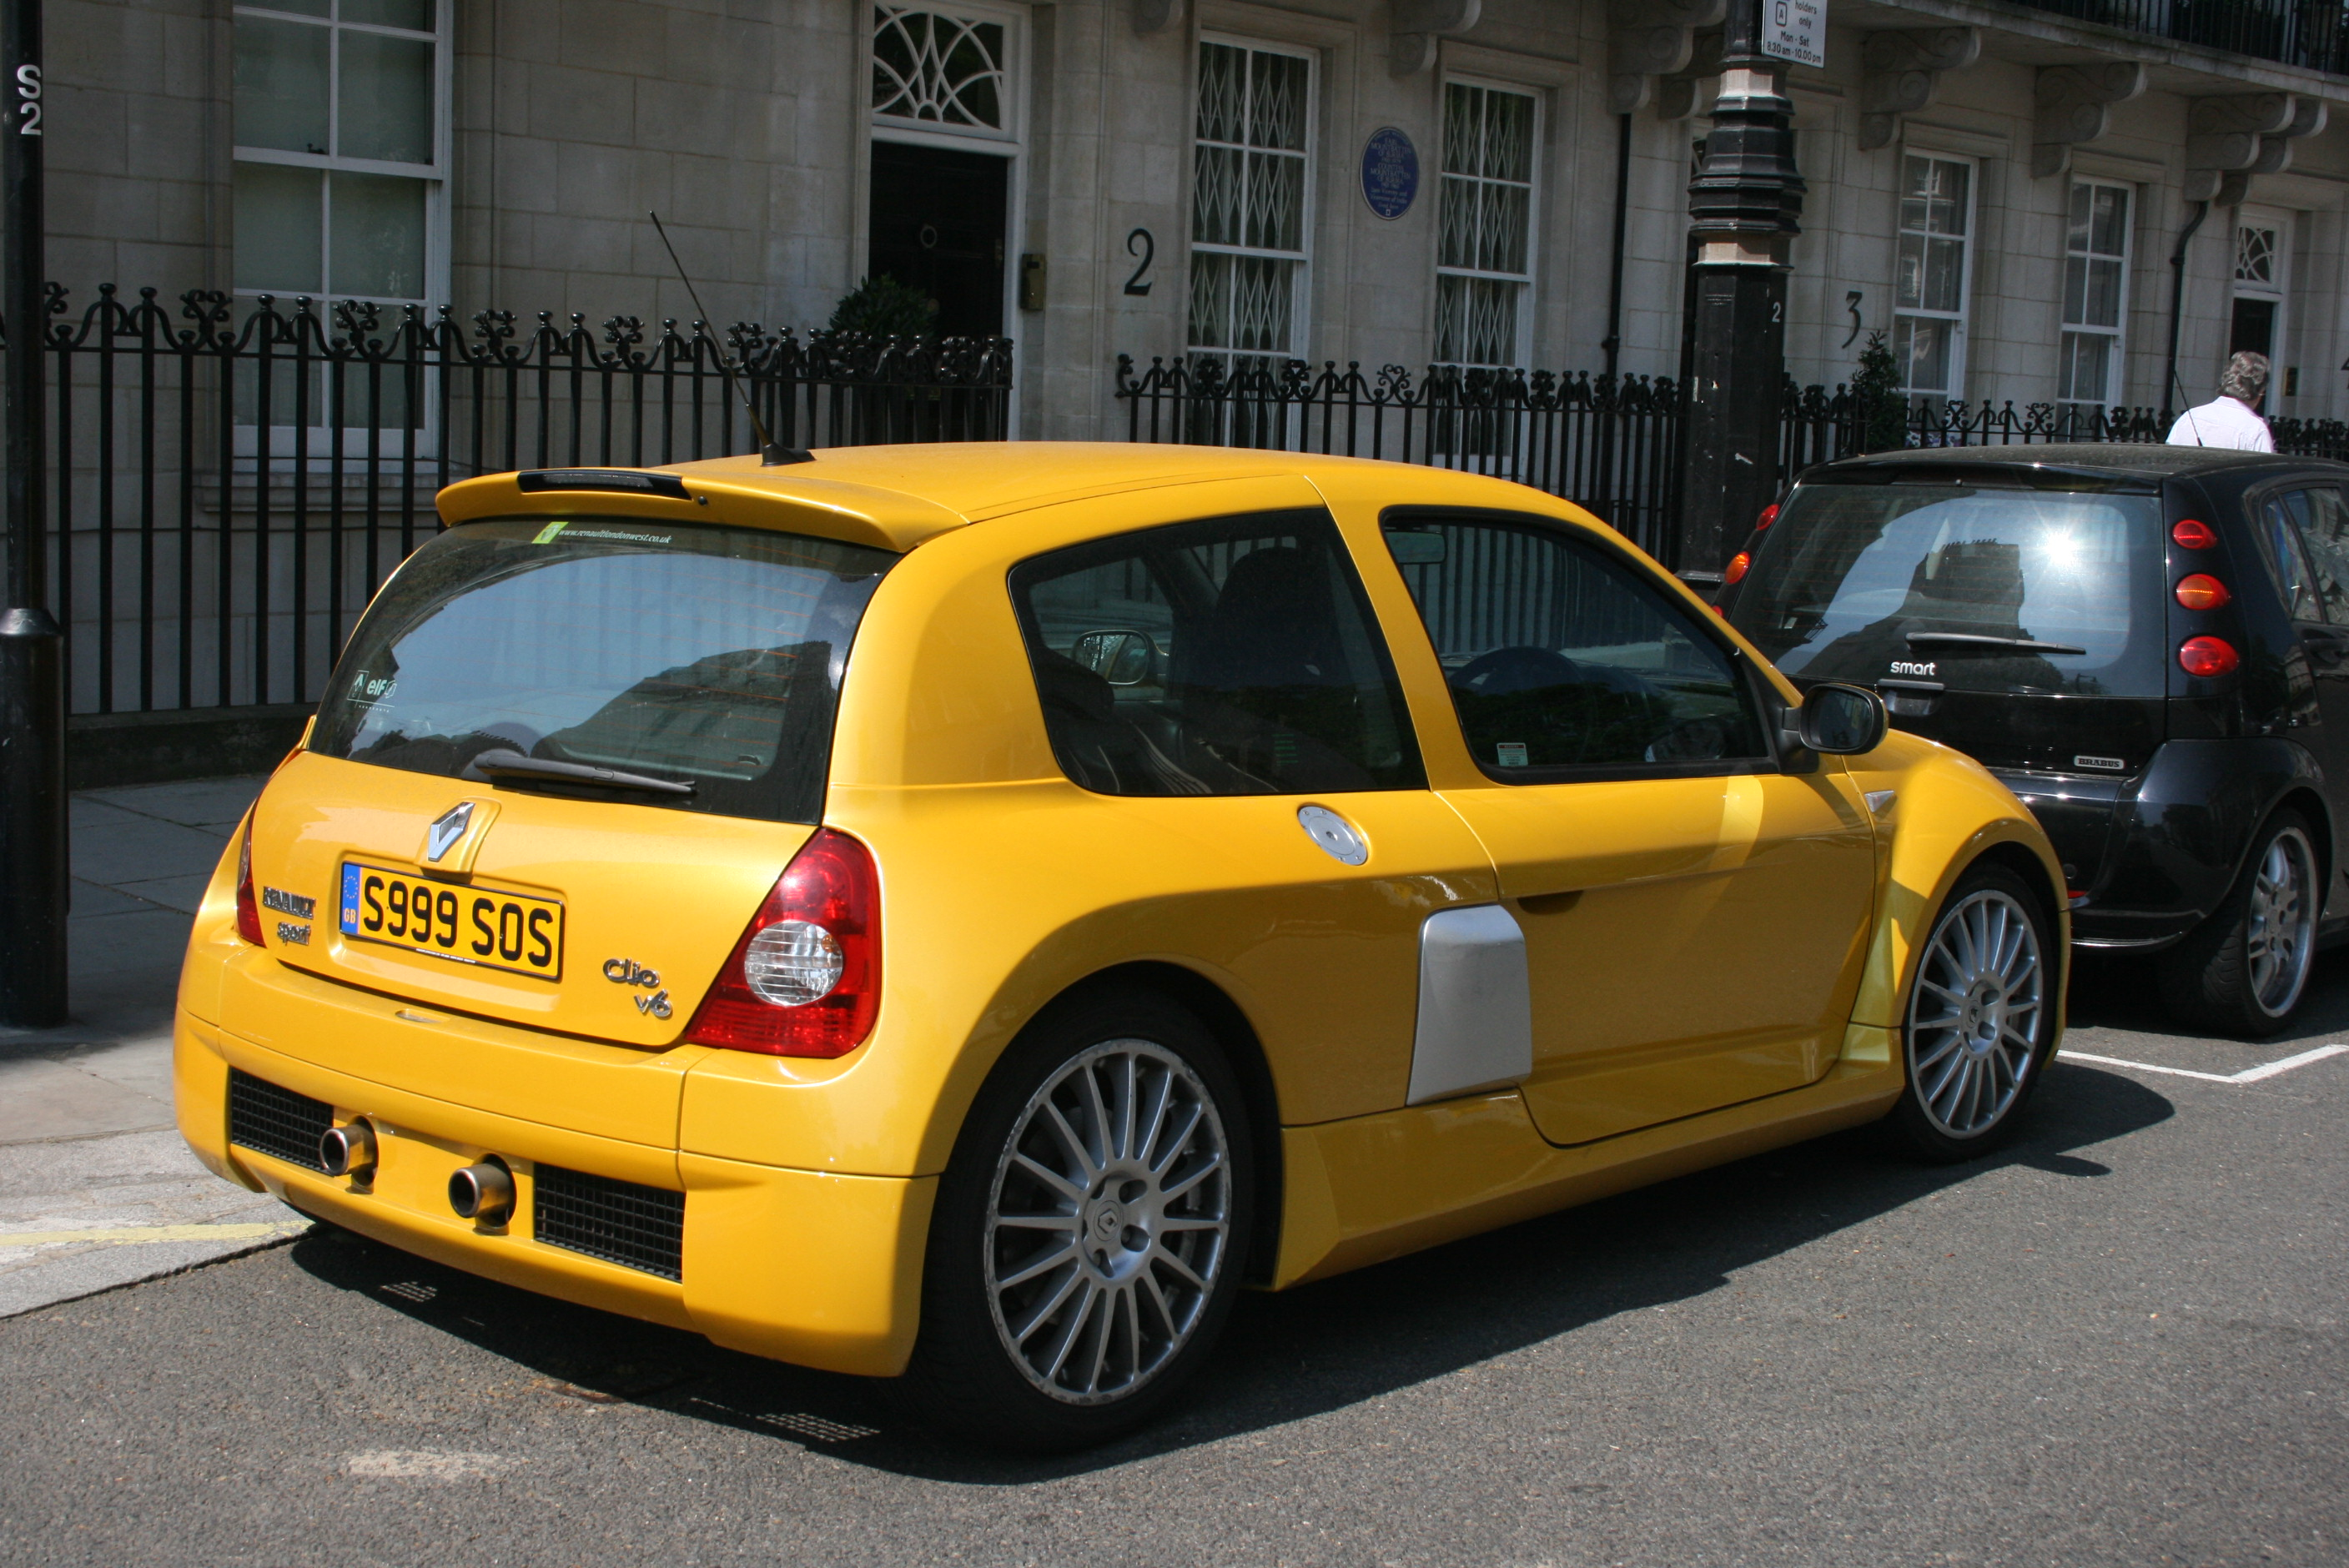 file renault clio v6 knightsbridge flickr. Black Bedroom Furniture Sets. Home Design Ideas